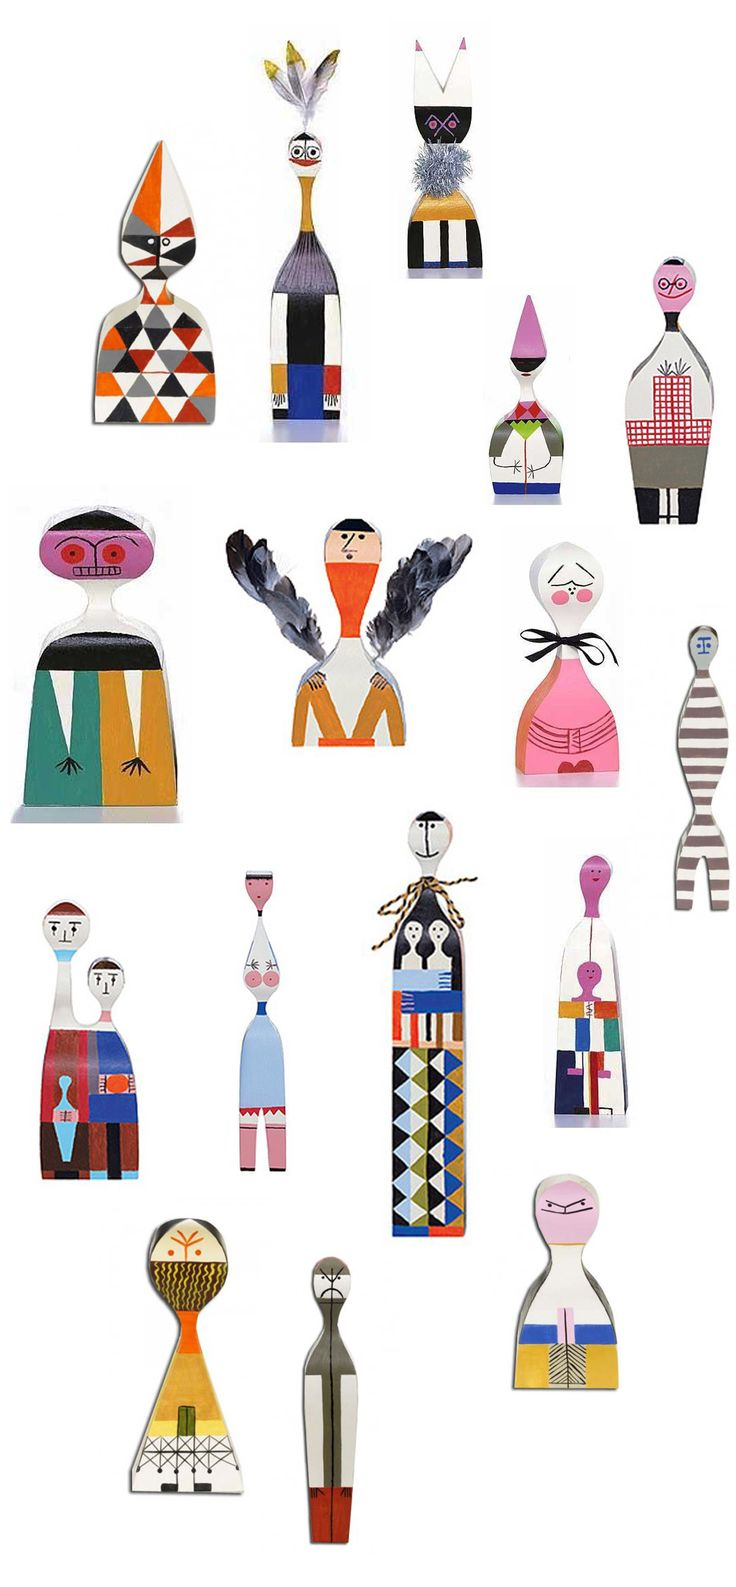 wooden dolls • alexander girard • vitra, reintroduced based on original design